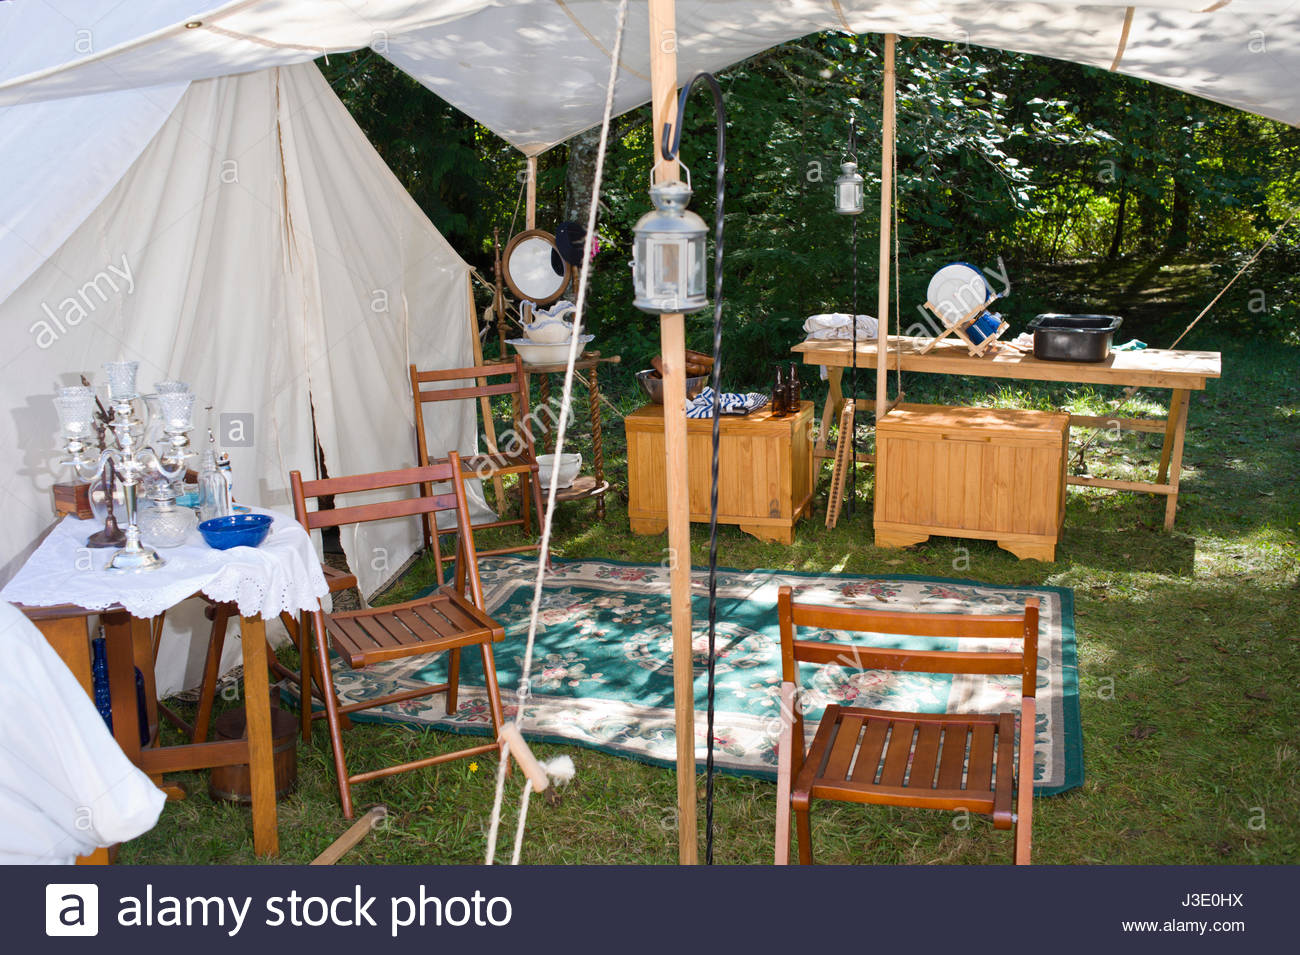 white canvas tents and awning with wood camp furniture and